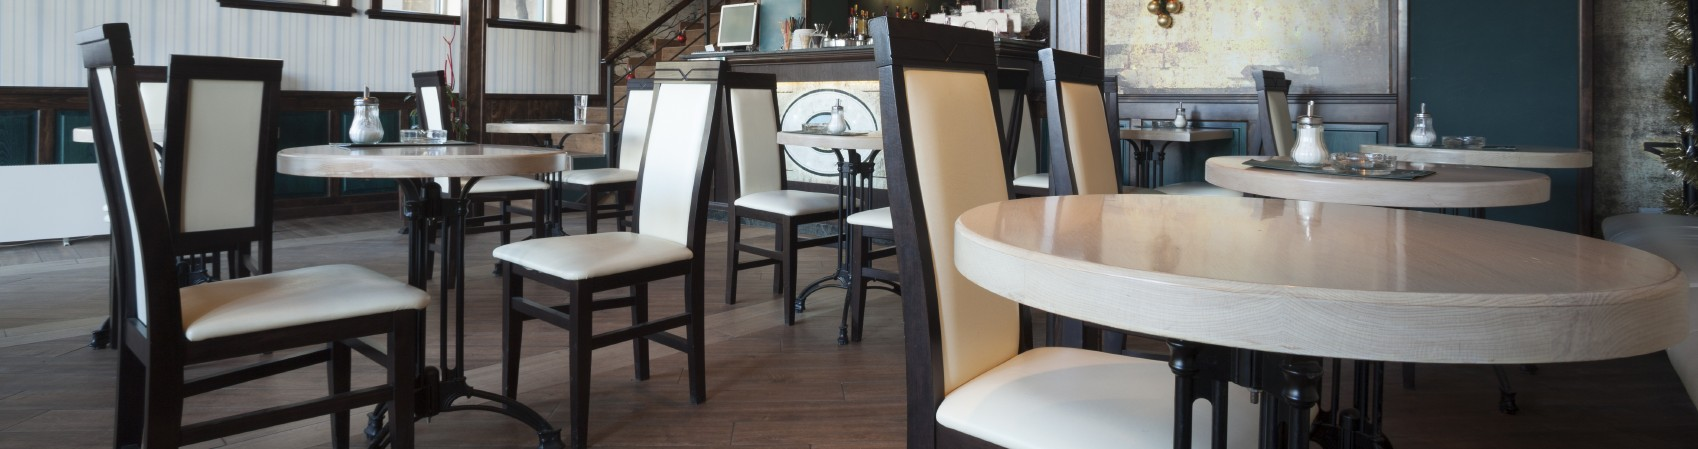 RSA Seating – Restaurant Furniture & Upholstery Chicago IL